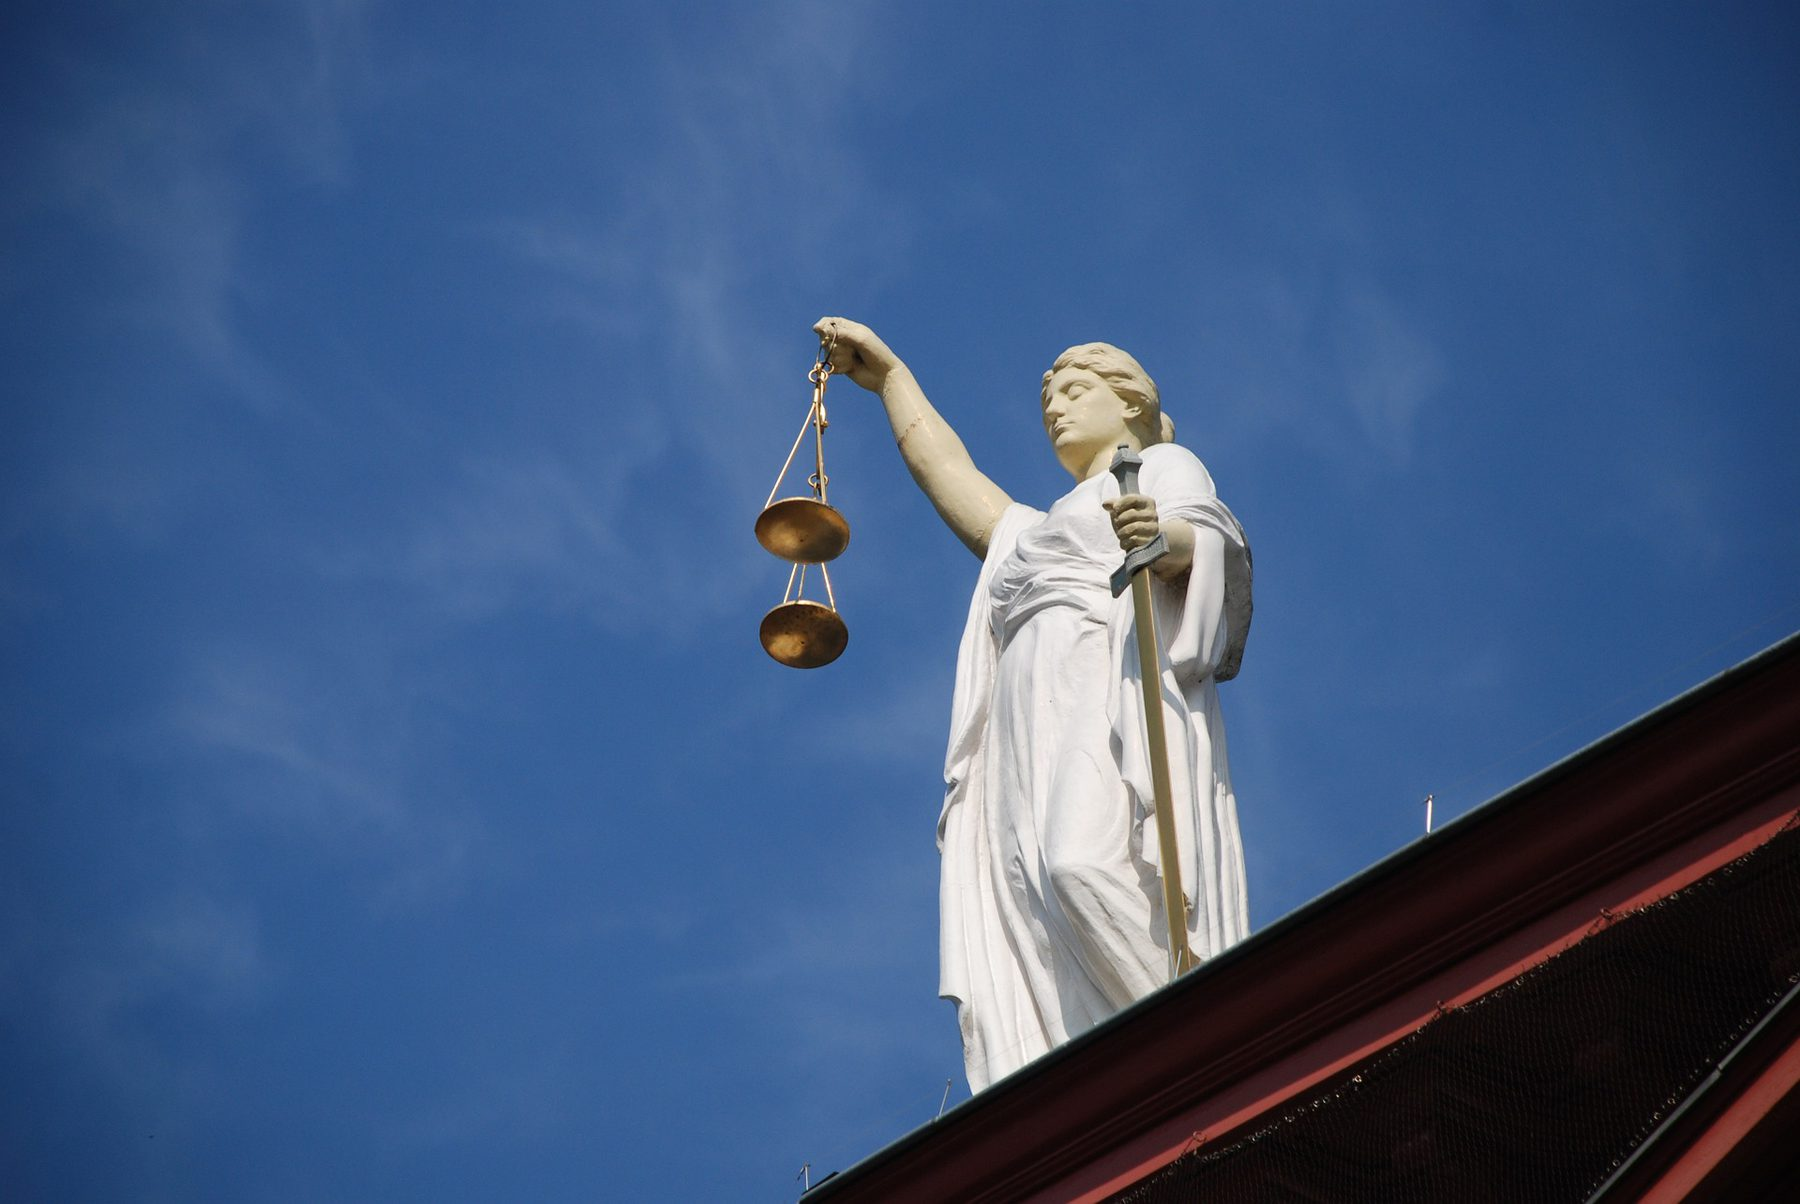 Legal Services (Sector Header: Statue Holding Scales)